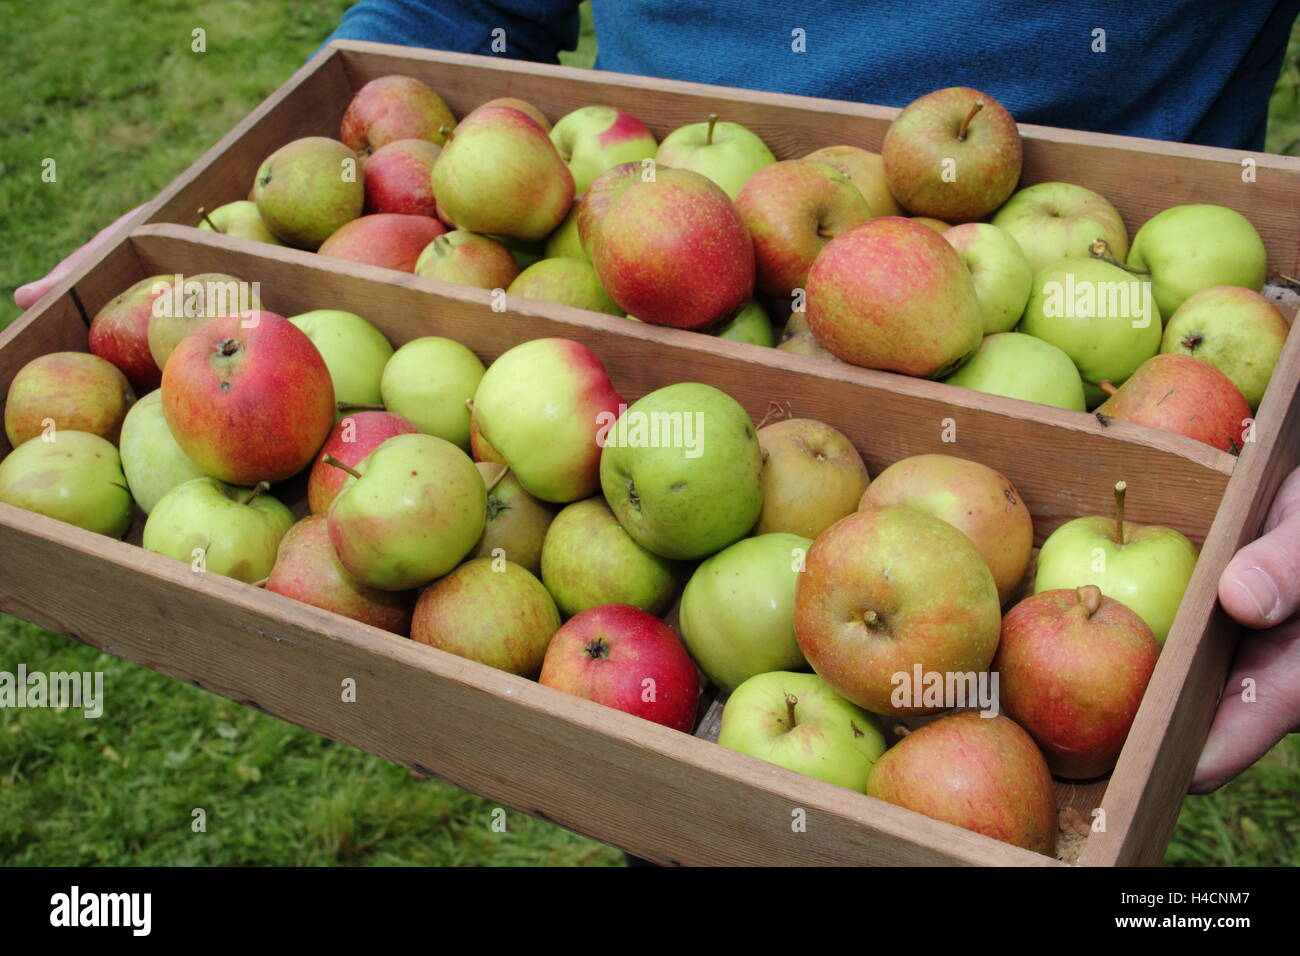 Freshly harvested English apples in a wooden crate carried through an English orchard on a bright autumn (October) - Stock Image